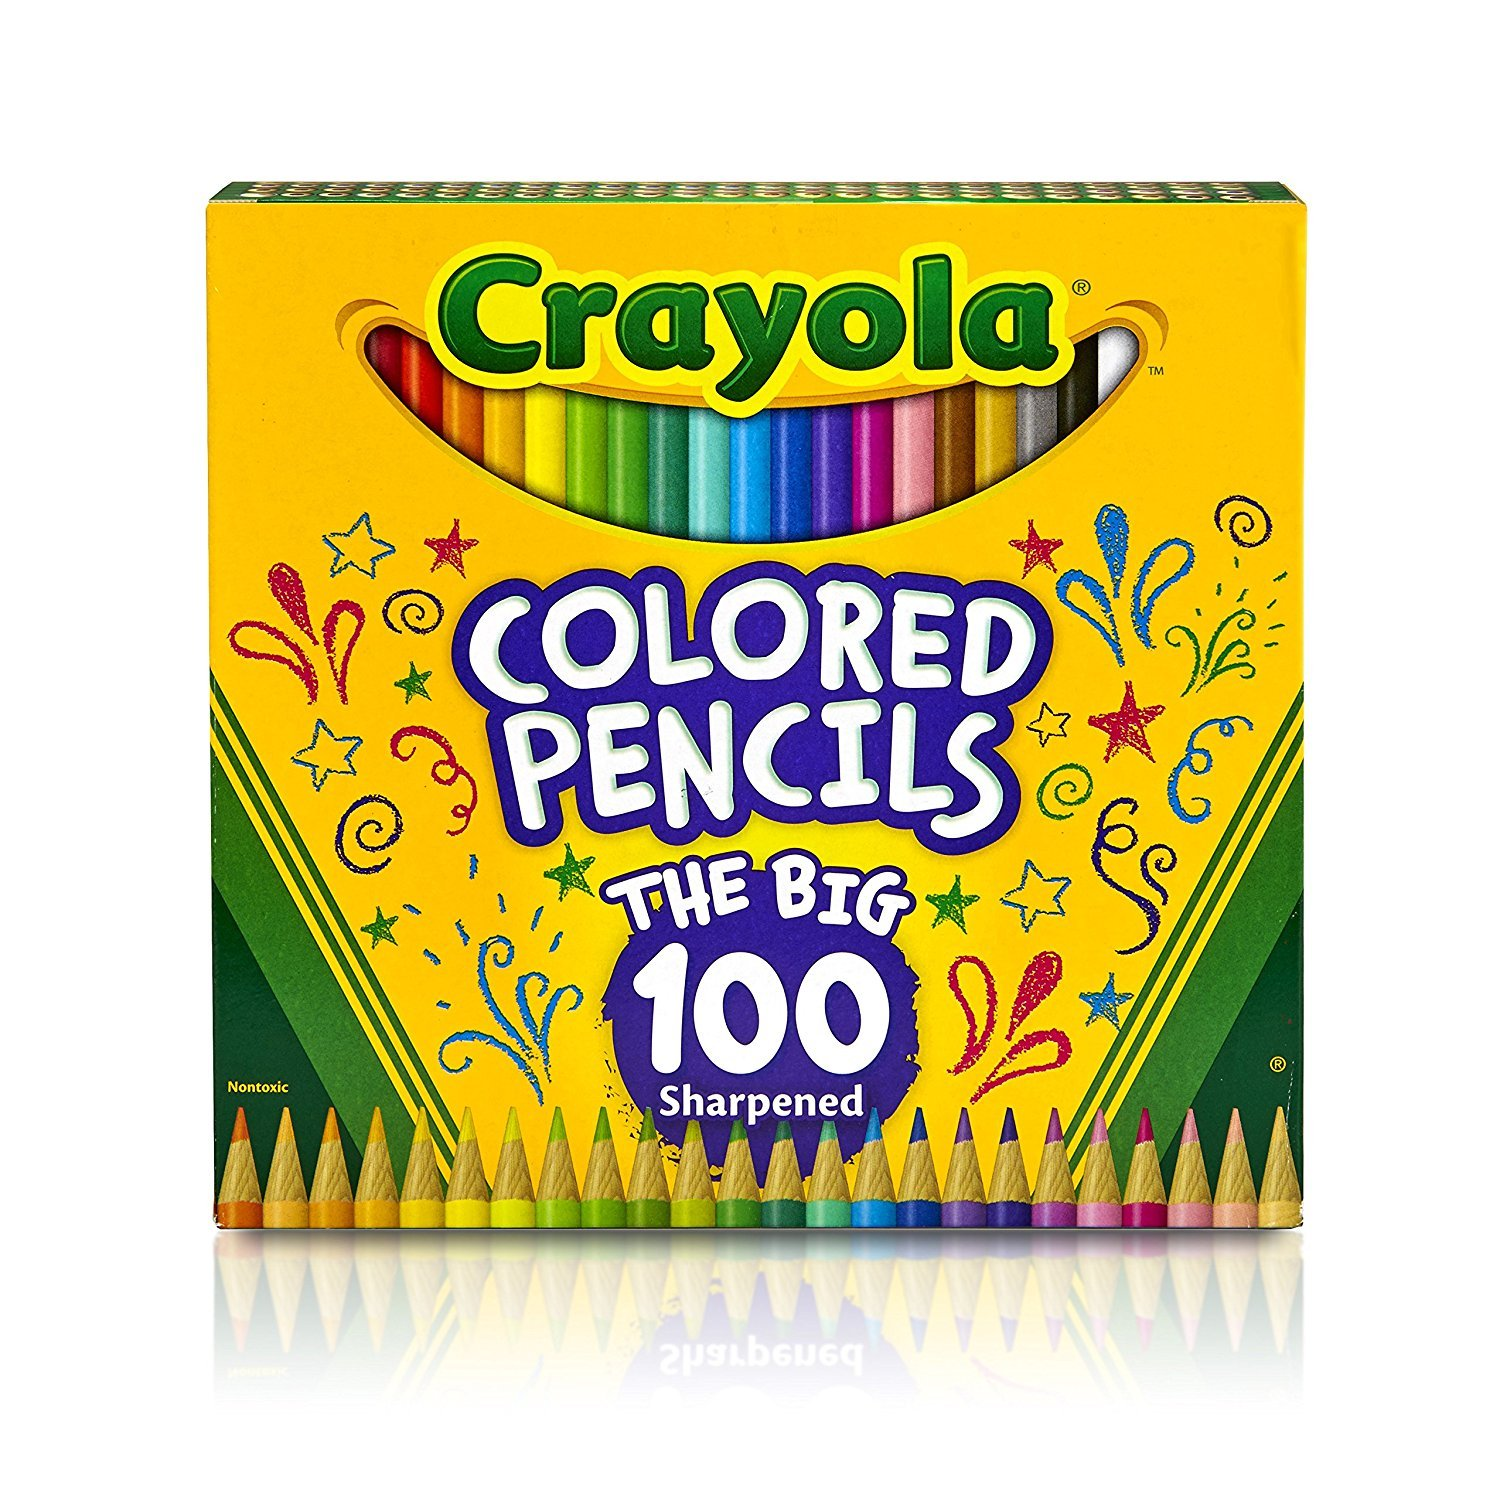 2-Pack of 100 Crayola Colored Pencils